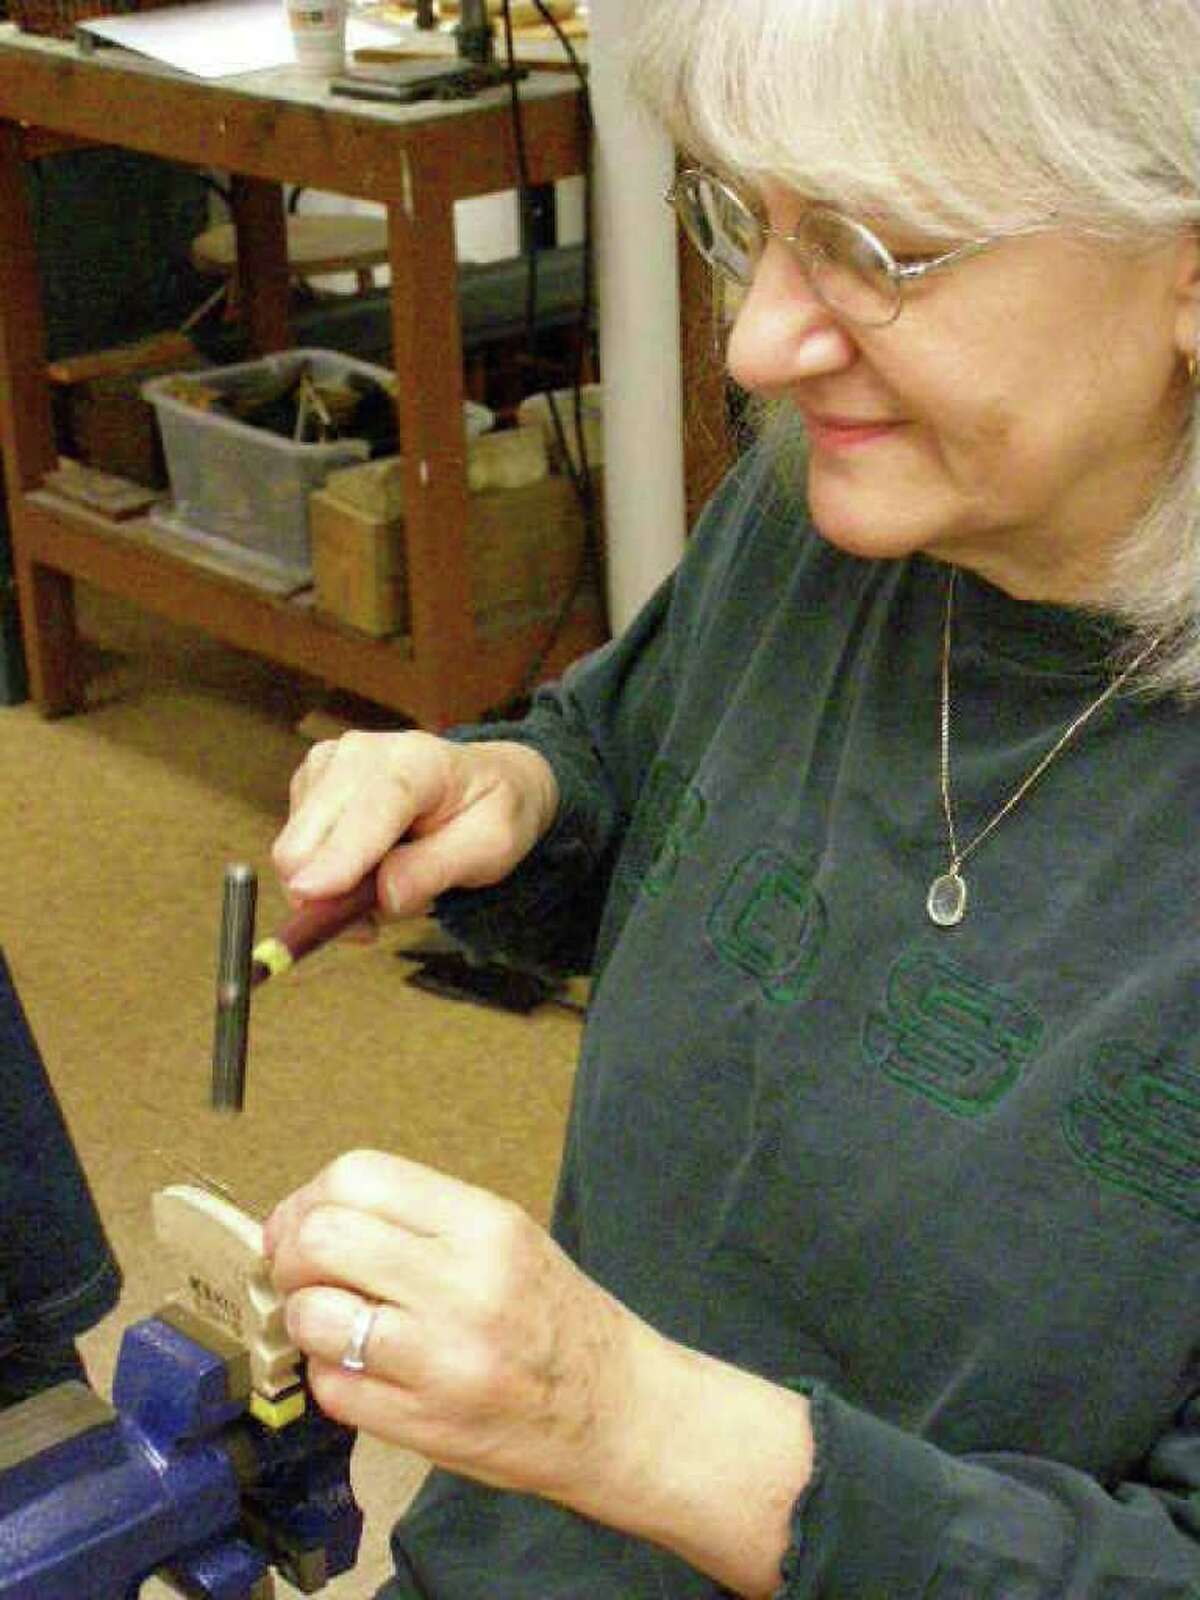 Pati Segar of Danbury works on a micro spiculum at The Brookfield Craft Center which began offering classes again last weekend after it closed in May. Sept. 2010 photo